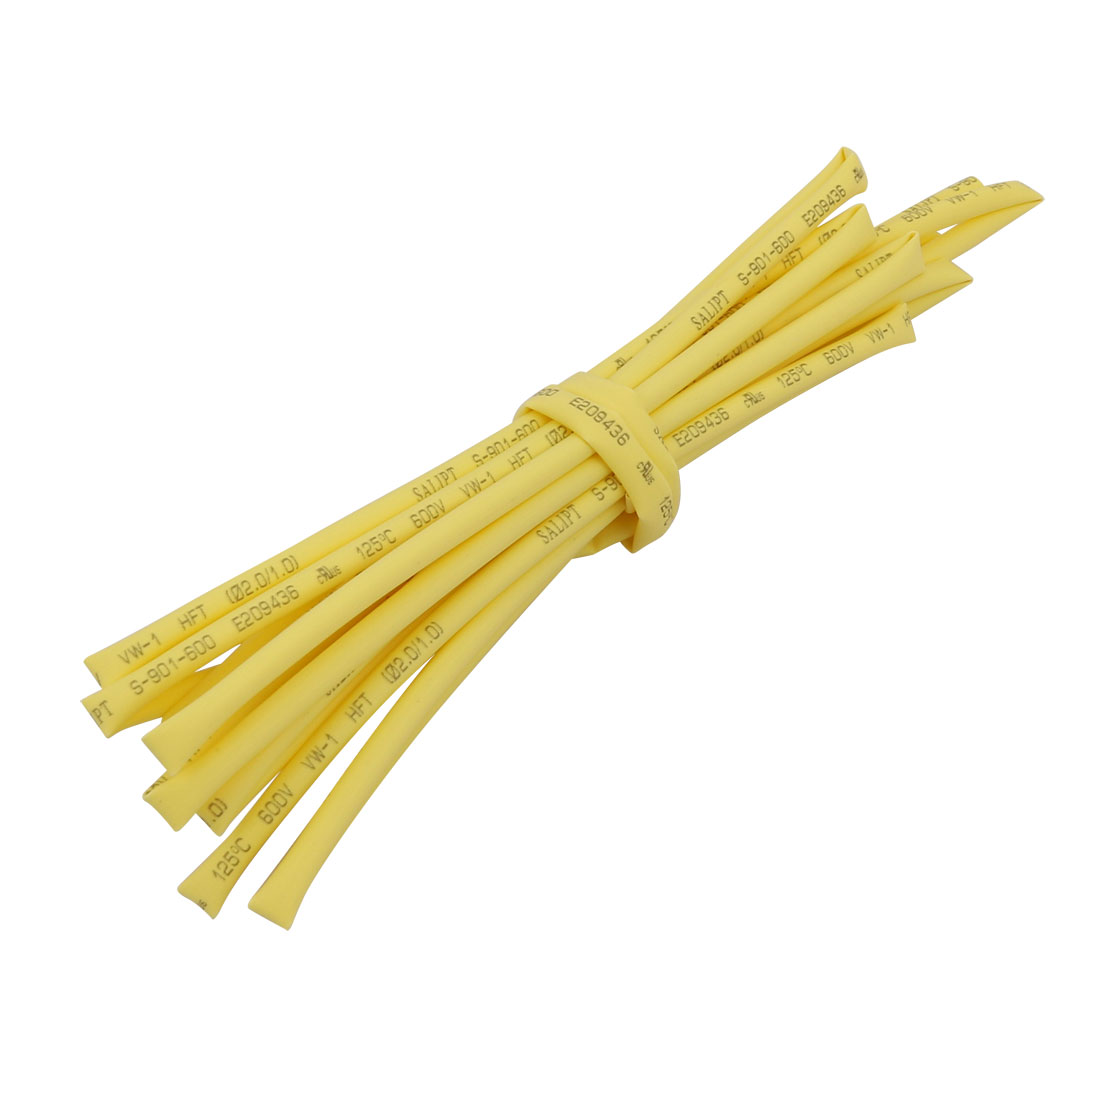 2M x 0.08in Inner Dia Polyolefin Flame Retardant Tube Yellow for Wire Repairing